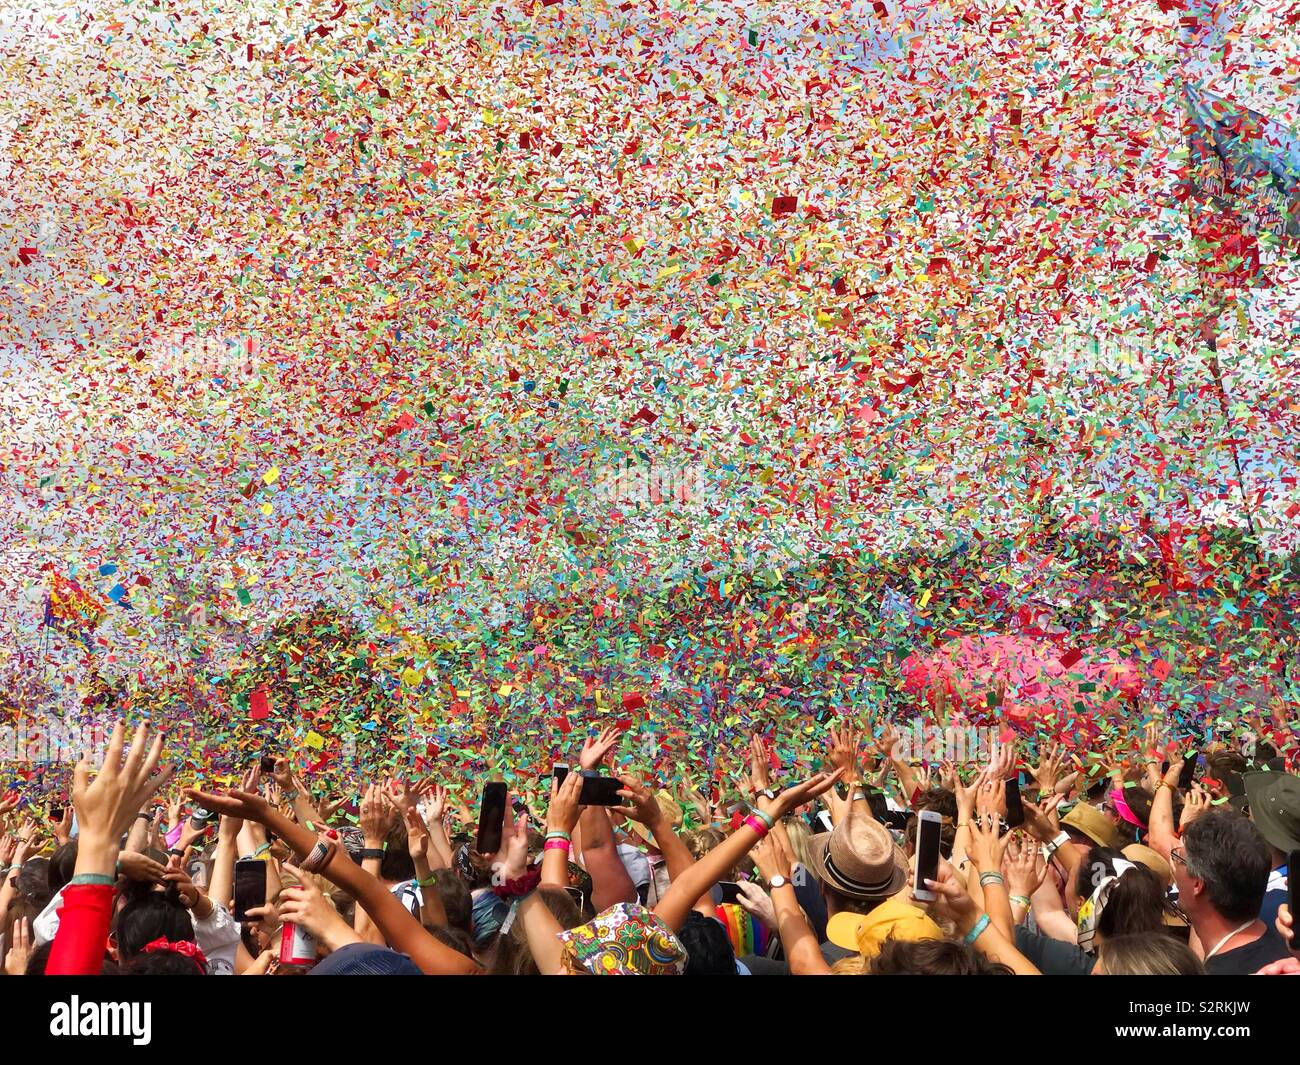 Confetti/ Ticker tape falling from the sky during the amazing set by Years & Years on the Pyramid Stage, Glastonbury Festival 2019 Stock Photo